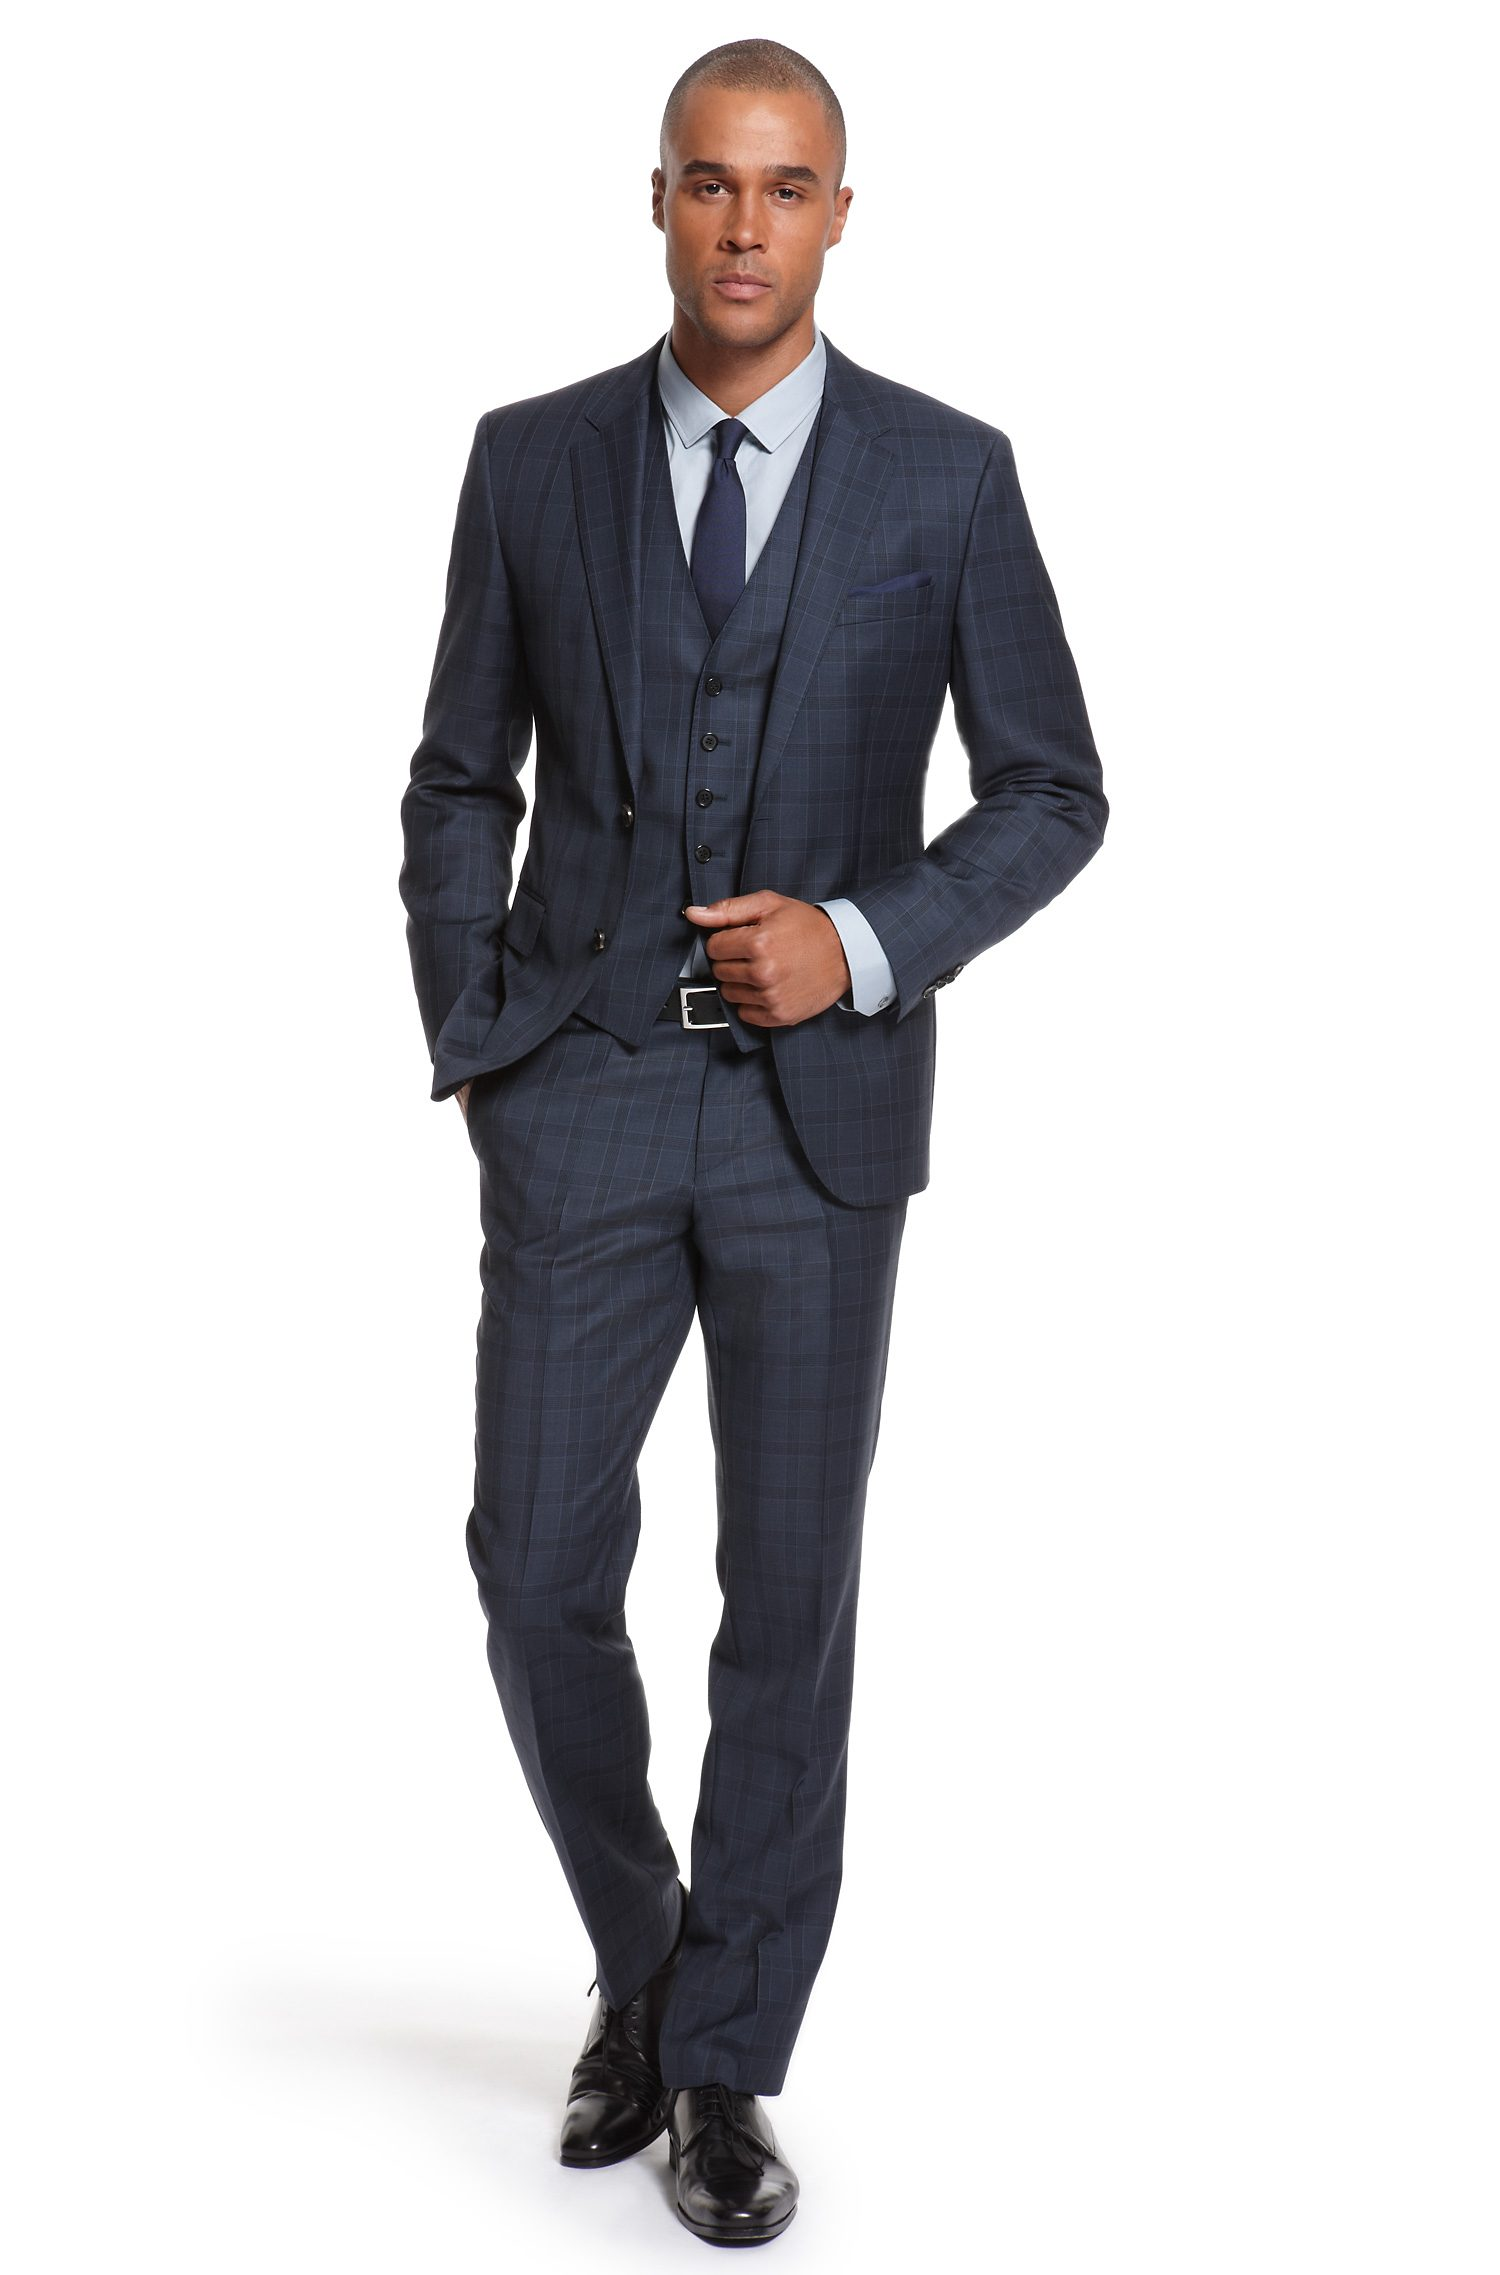 Navy blue suits... they're not just for bankers - L Squared Style